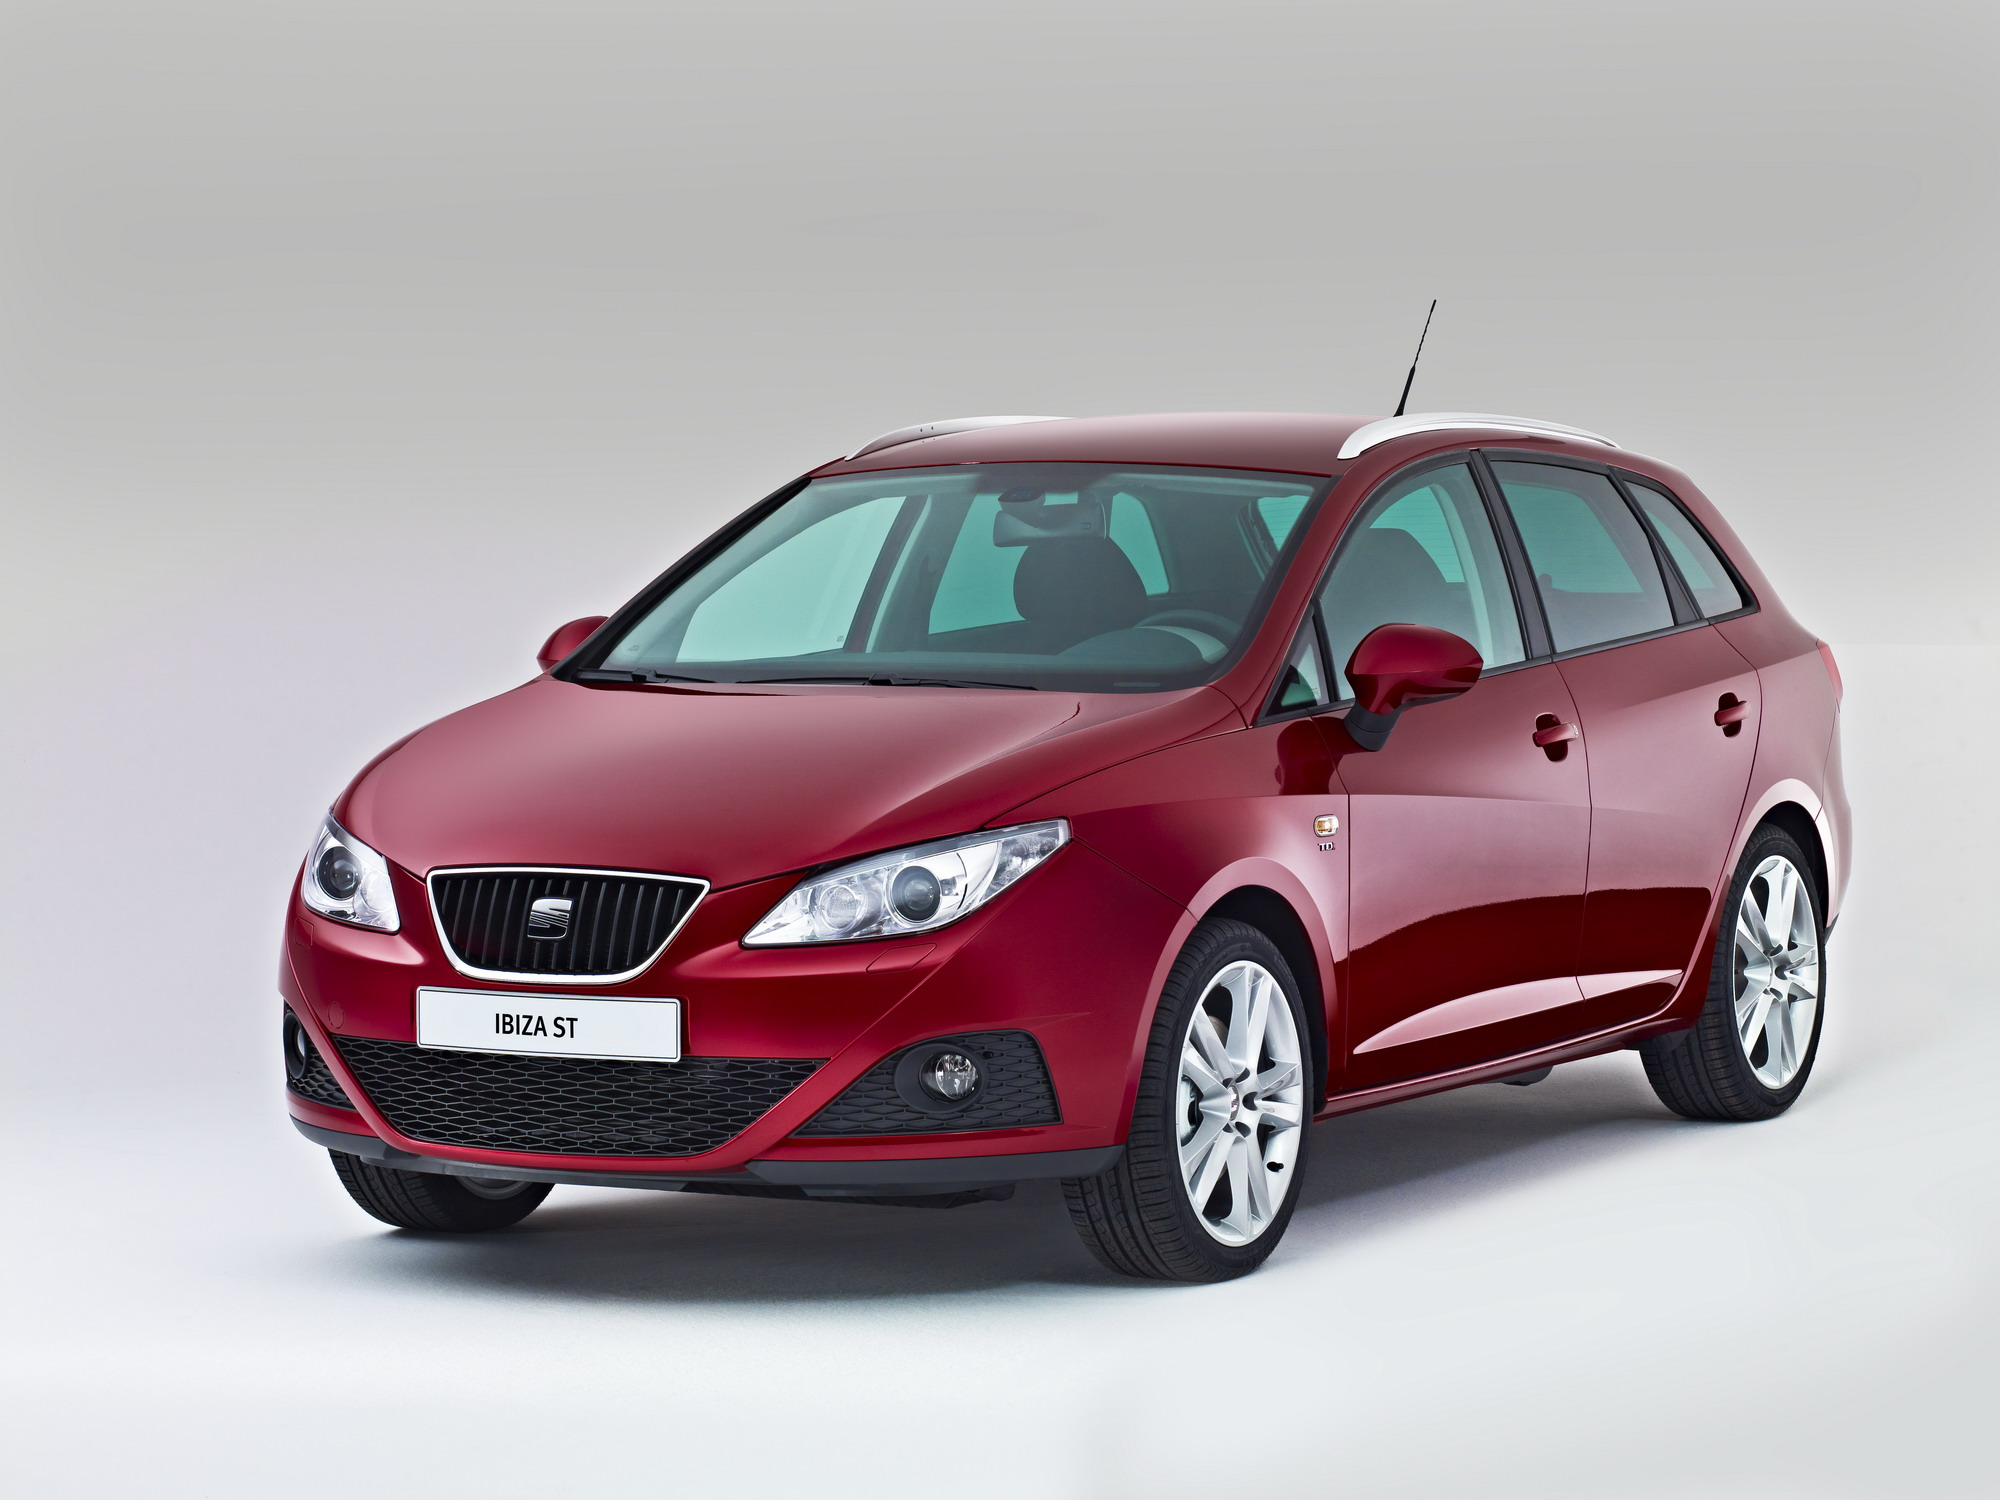 2010 seat ibiza st review top speed. Black Bedroom Furniture Sets. Home Design Ideas